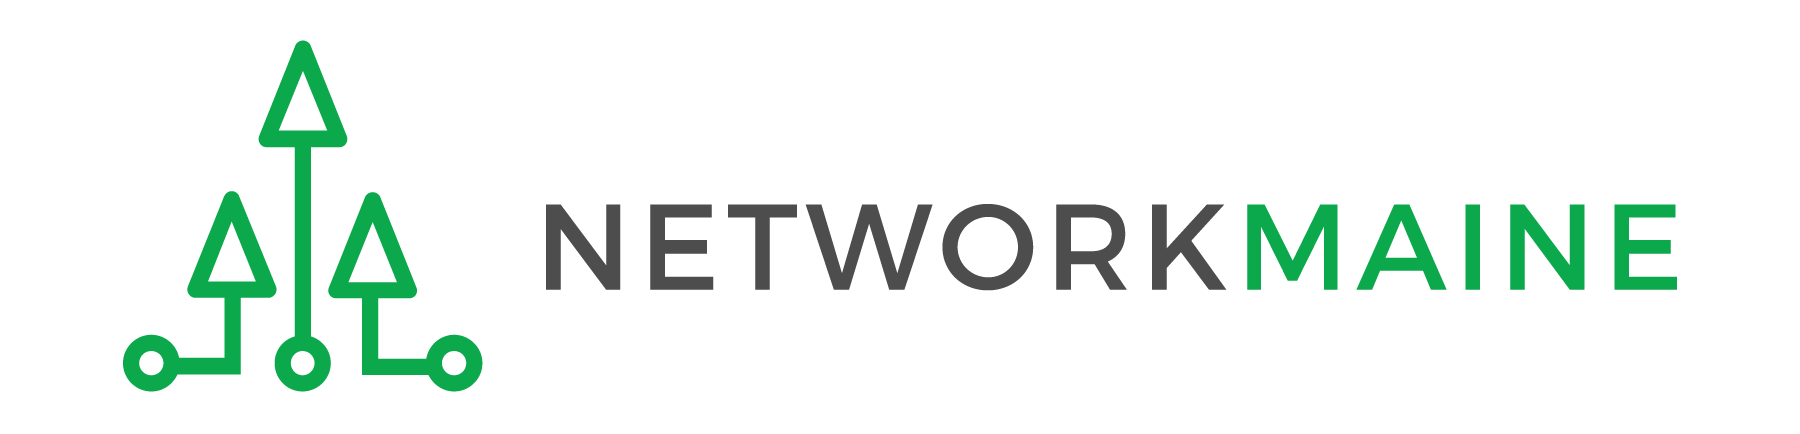 Networkmaine